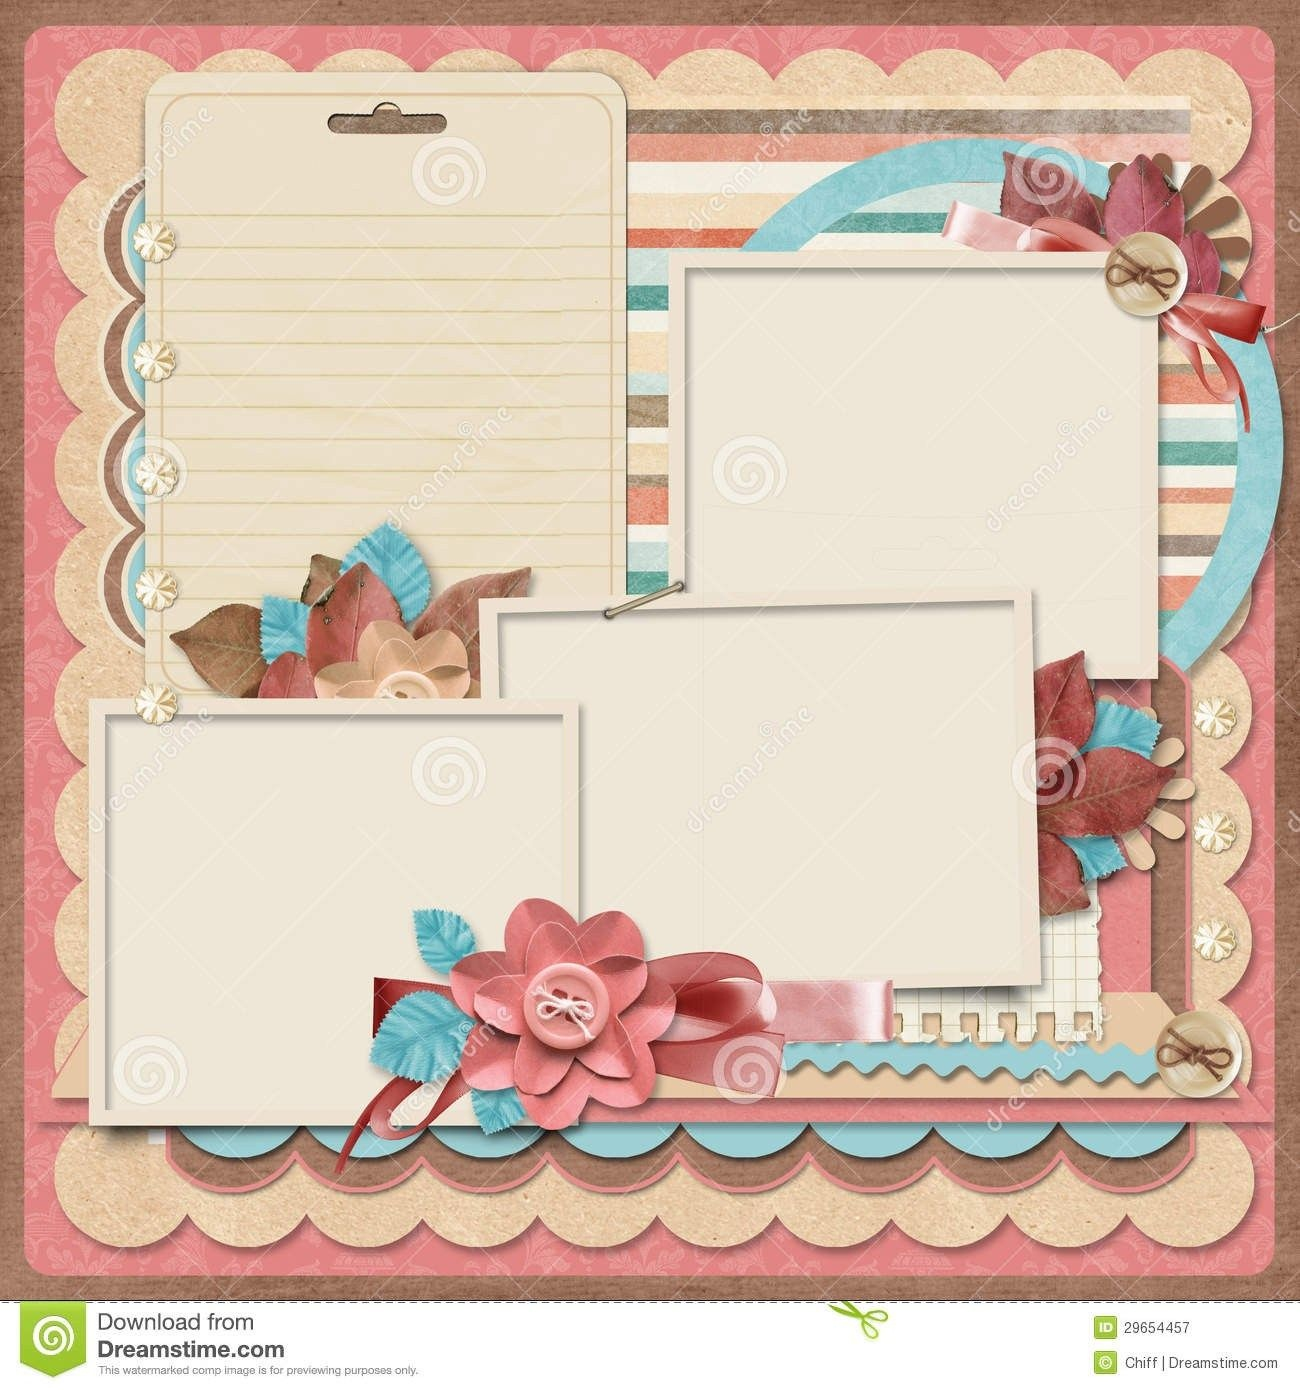 Scrapbook Printables Templates Free Scrapbook Templates - Baby Scrapbook Templates Free Printable